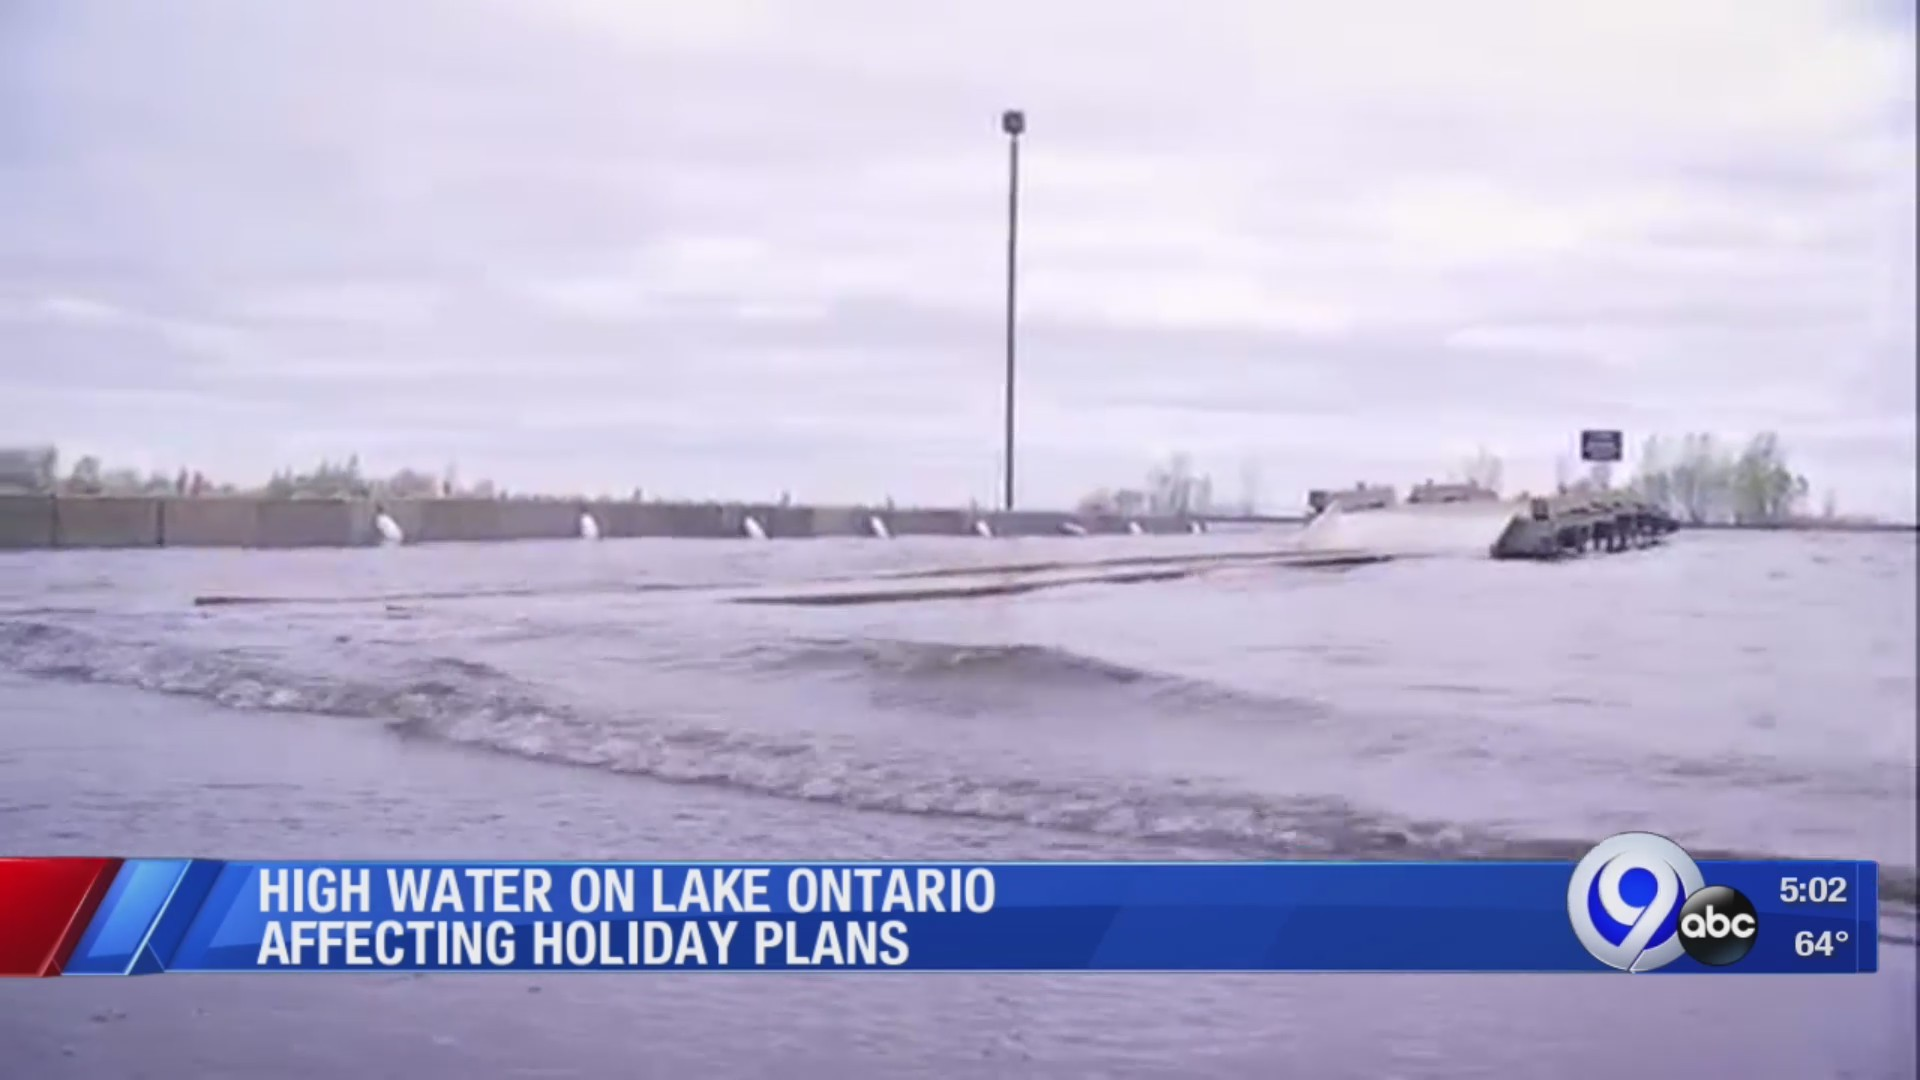 High_water_on_Lake_Ontario_affecting_hol_0_20190524210652